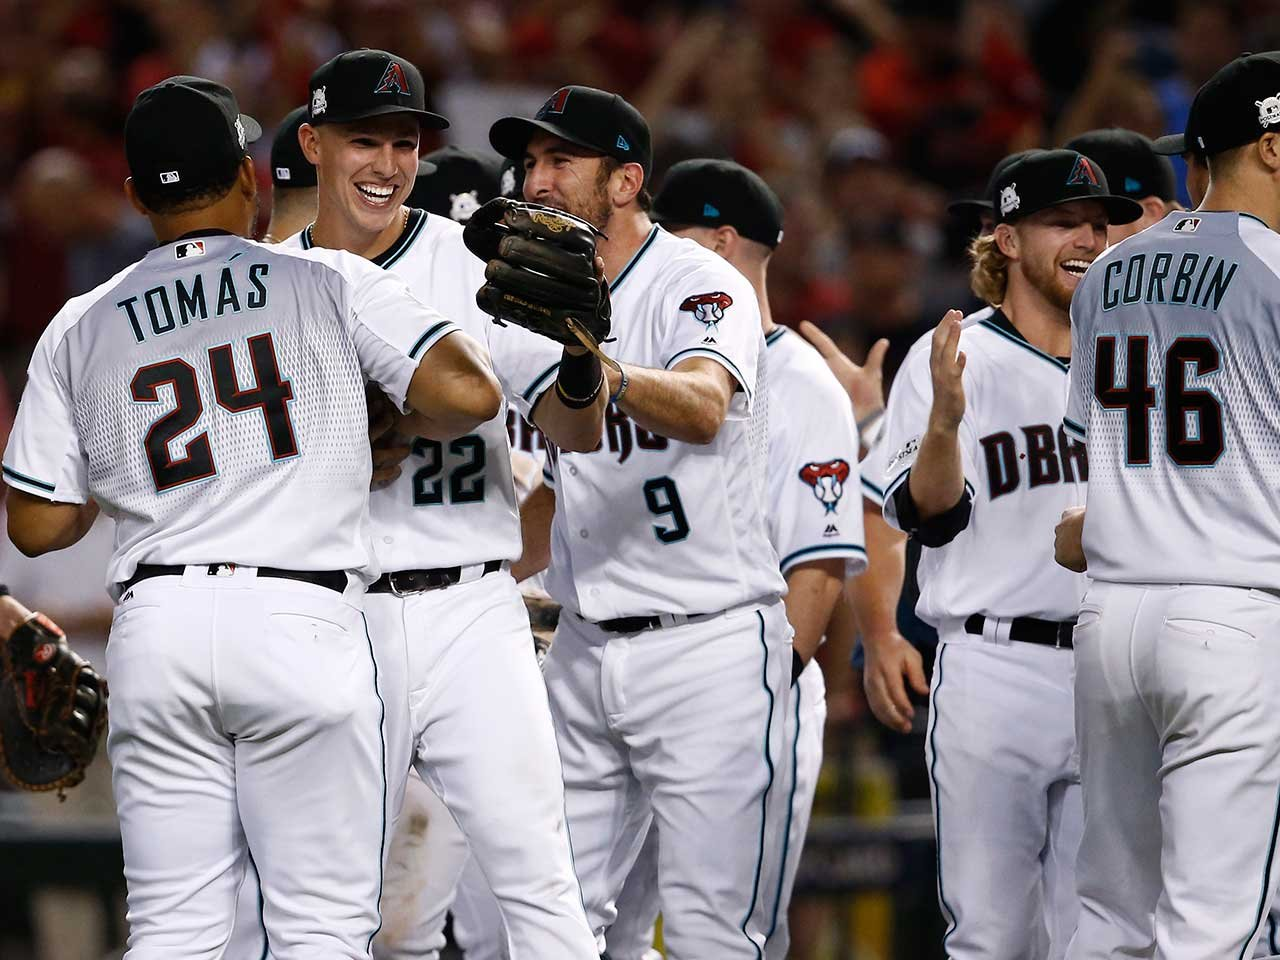 The Arizona Diamondbacks celebrate after the National League wild-card playoff baseball game against the Colorado Rockies, Wednesday, Oct. 4, 2017, in Phoenix. (Source: AP Photo/Ross D. Franklin)